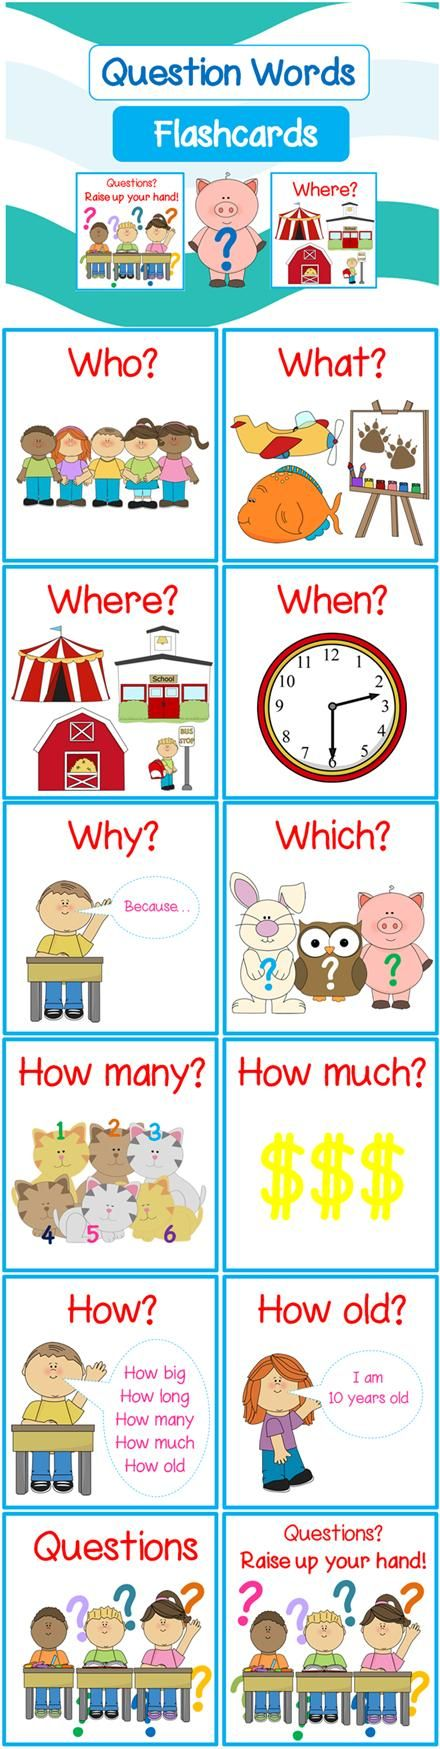 *FREE* Question Words Flashcards (Includes When, What Where, When, Why, Which, How, How Many, How Much, How old, How often) - Repinned by Chesapeake College Adult Ed. We offer free classes on the Eastern Shore of MD to help you earn your GED - H.S. Diploma or Learn English (ESL) . For GED classes contact Danielle Thomas 410-829-6043 dthomas@chesapeke.edu For ESL classes contact Karen Luceti - 410-443-1163 Kluceti@chesapeake.edu . www.chesapeake.edu